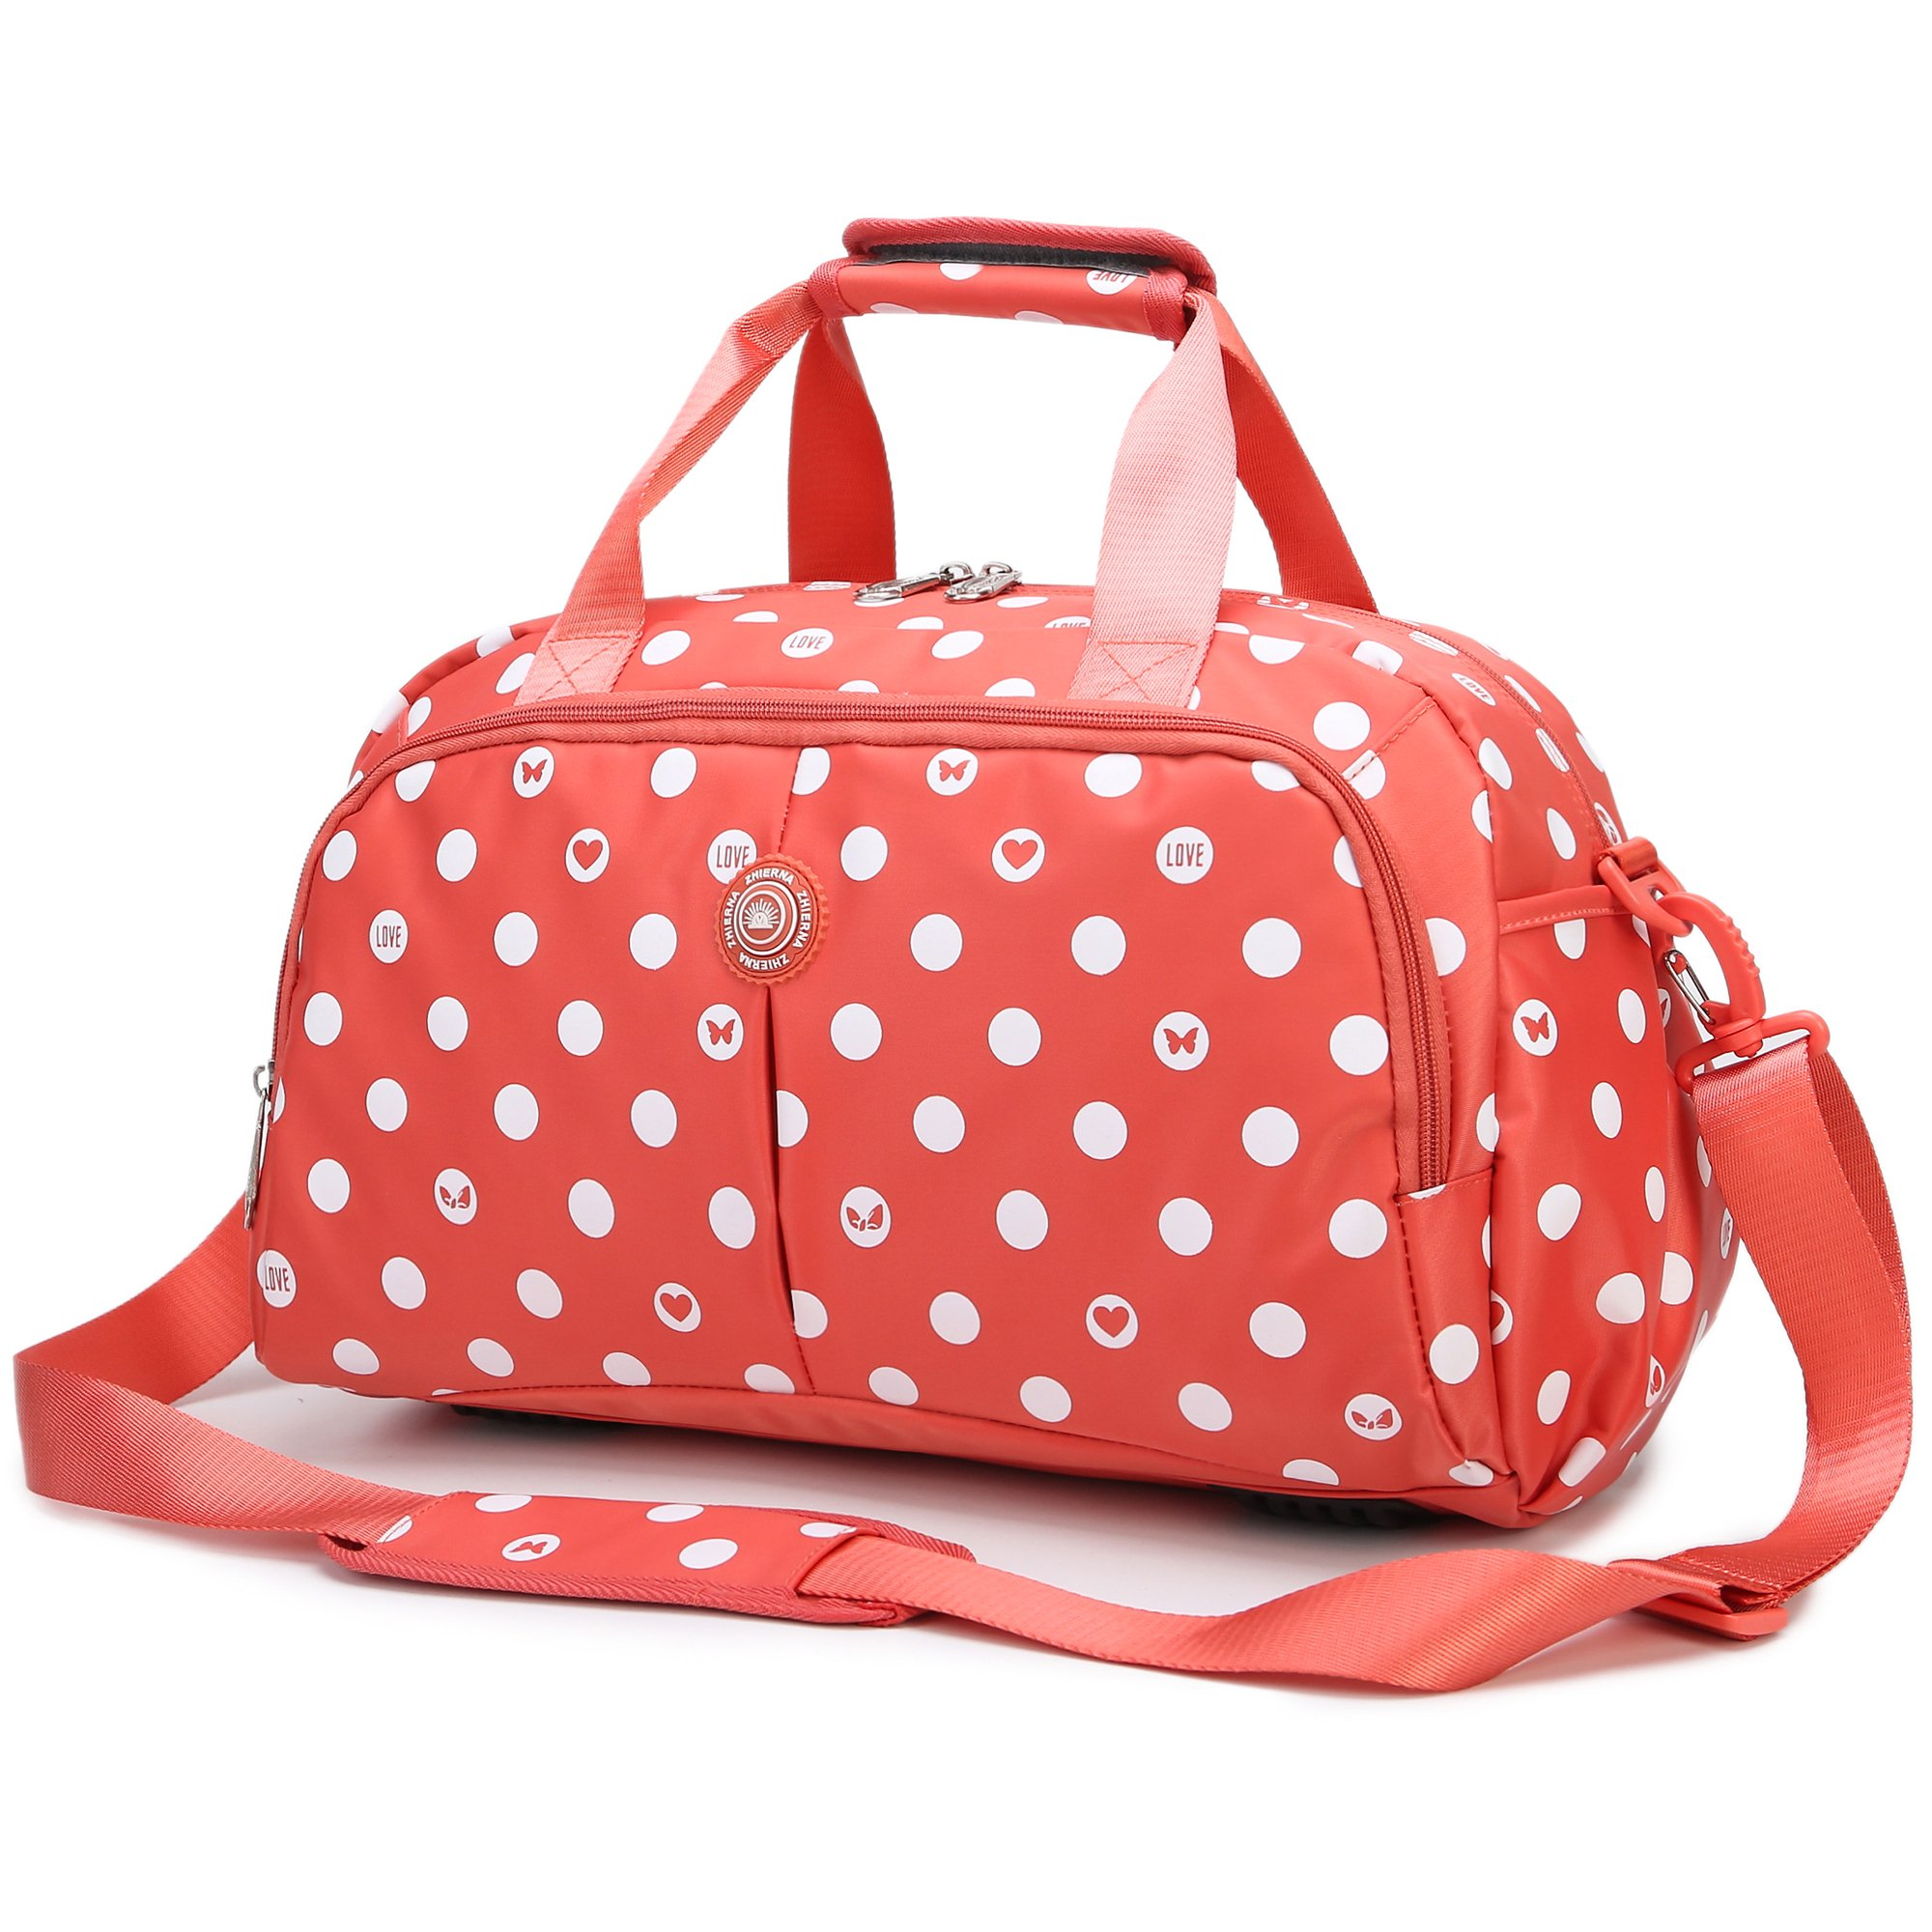 AOKE Water Resistant Travel Totes Duffle Luggge Bag Overnight Weekend Bag Nylon Fabric Stand Bag Spots Orange with Anti-theft Free Gift